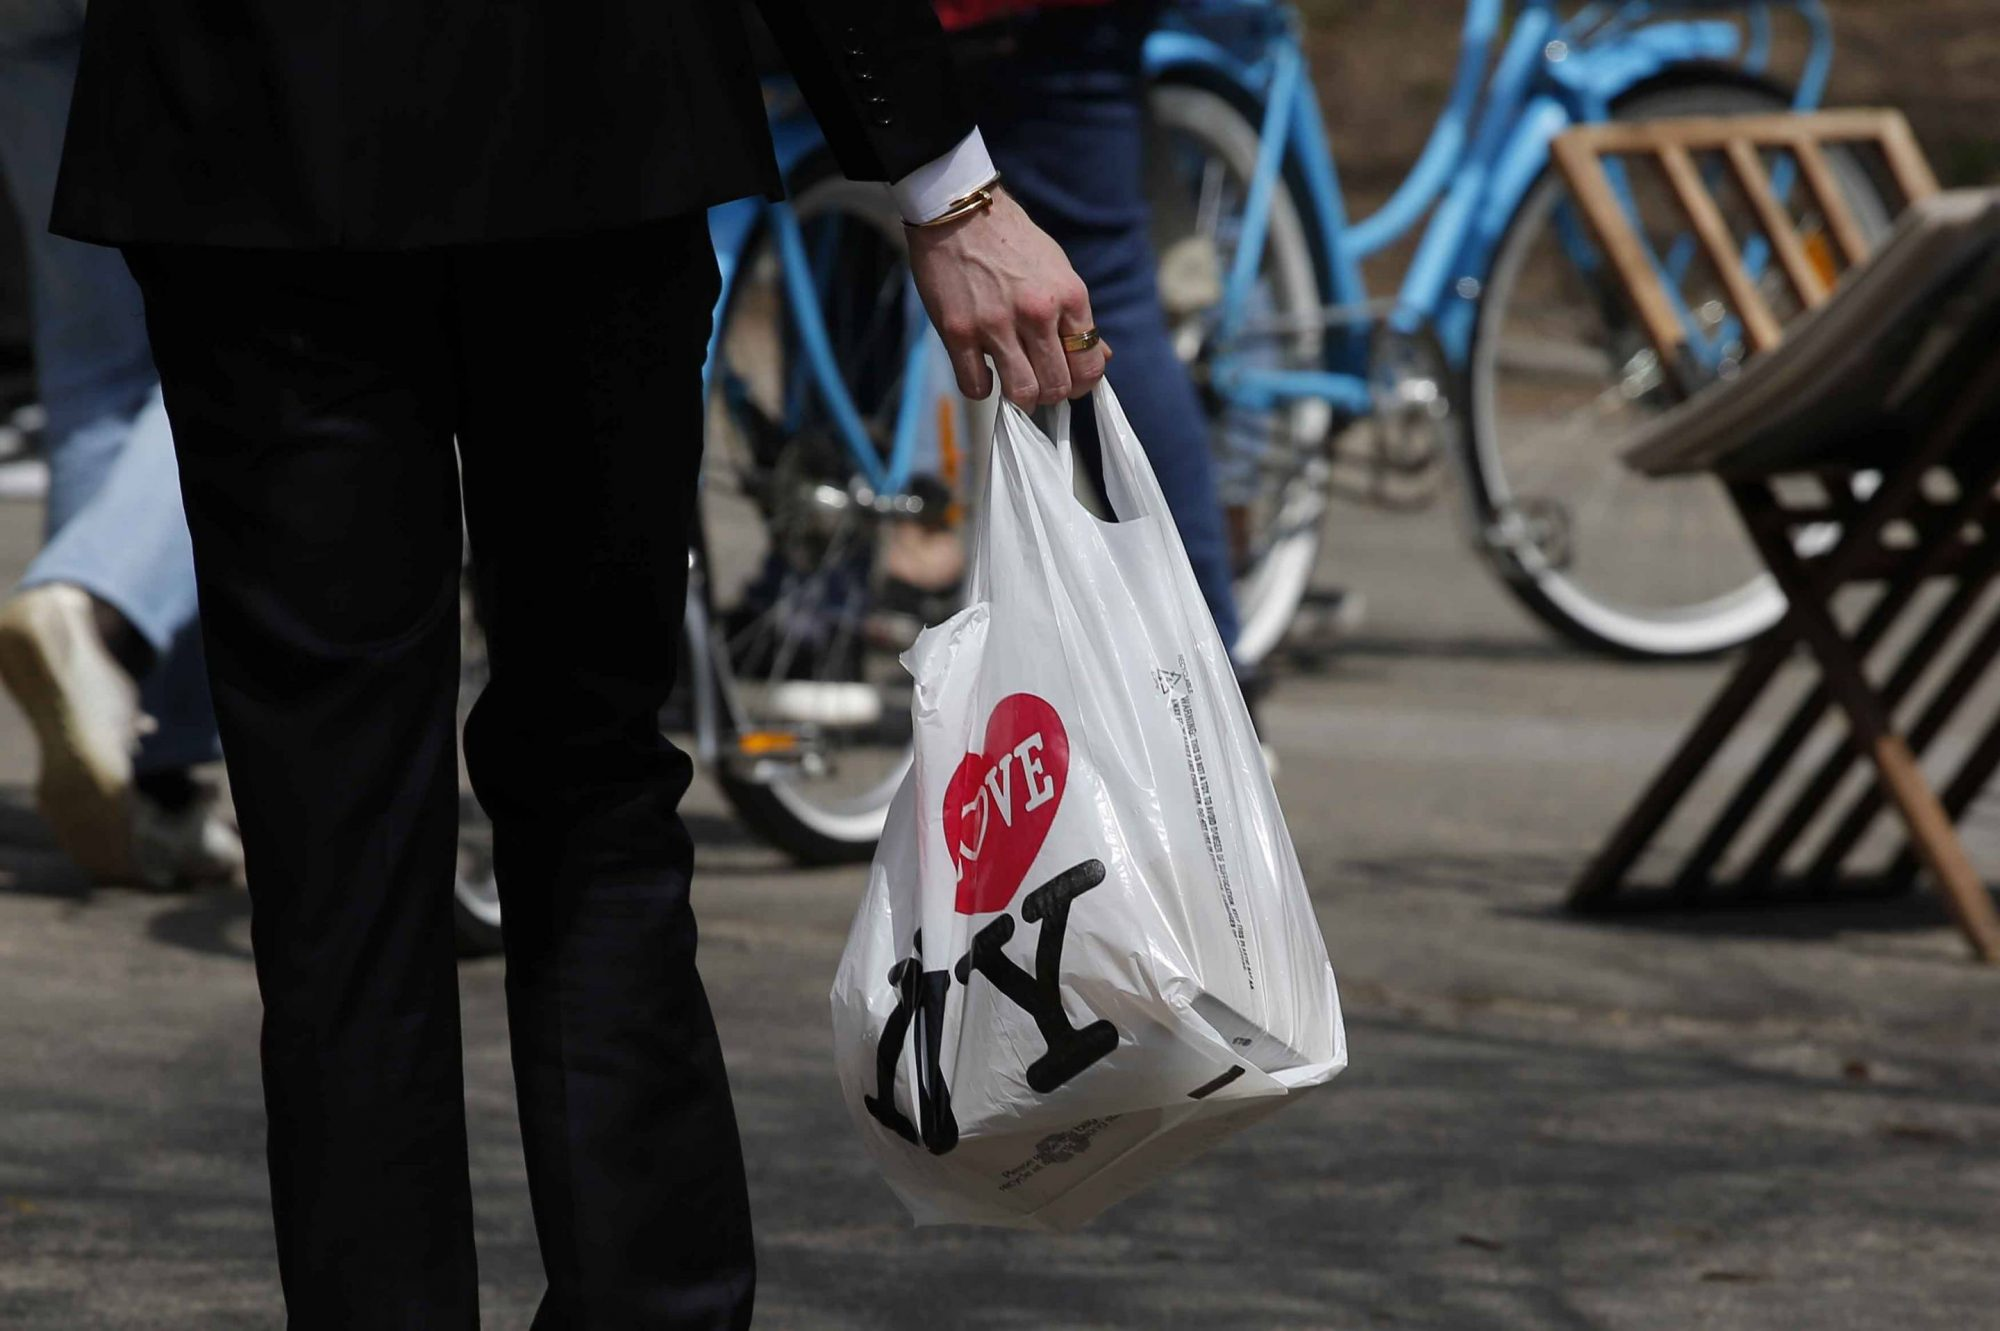 New York's Governor Cuomo Wants to Ban Single-Use Plastic Bags